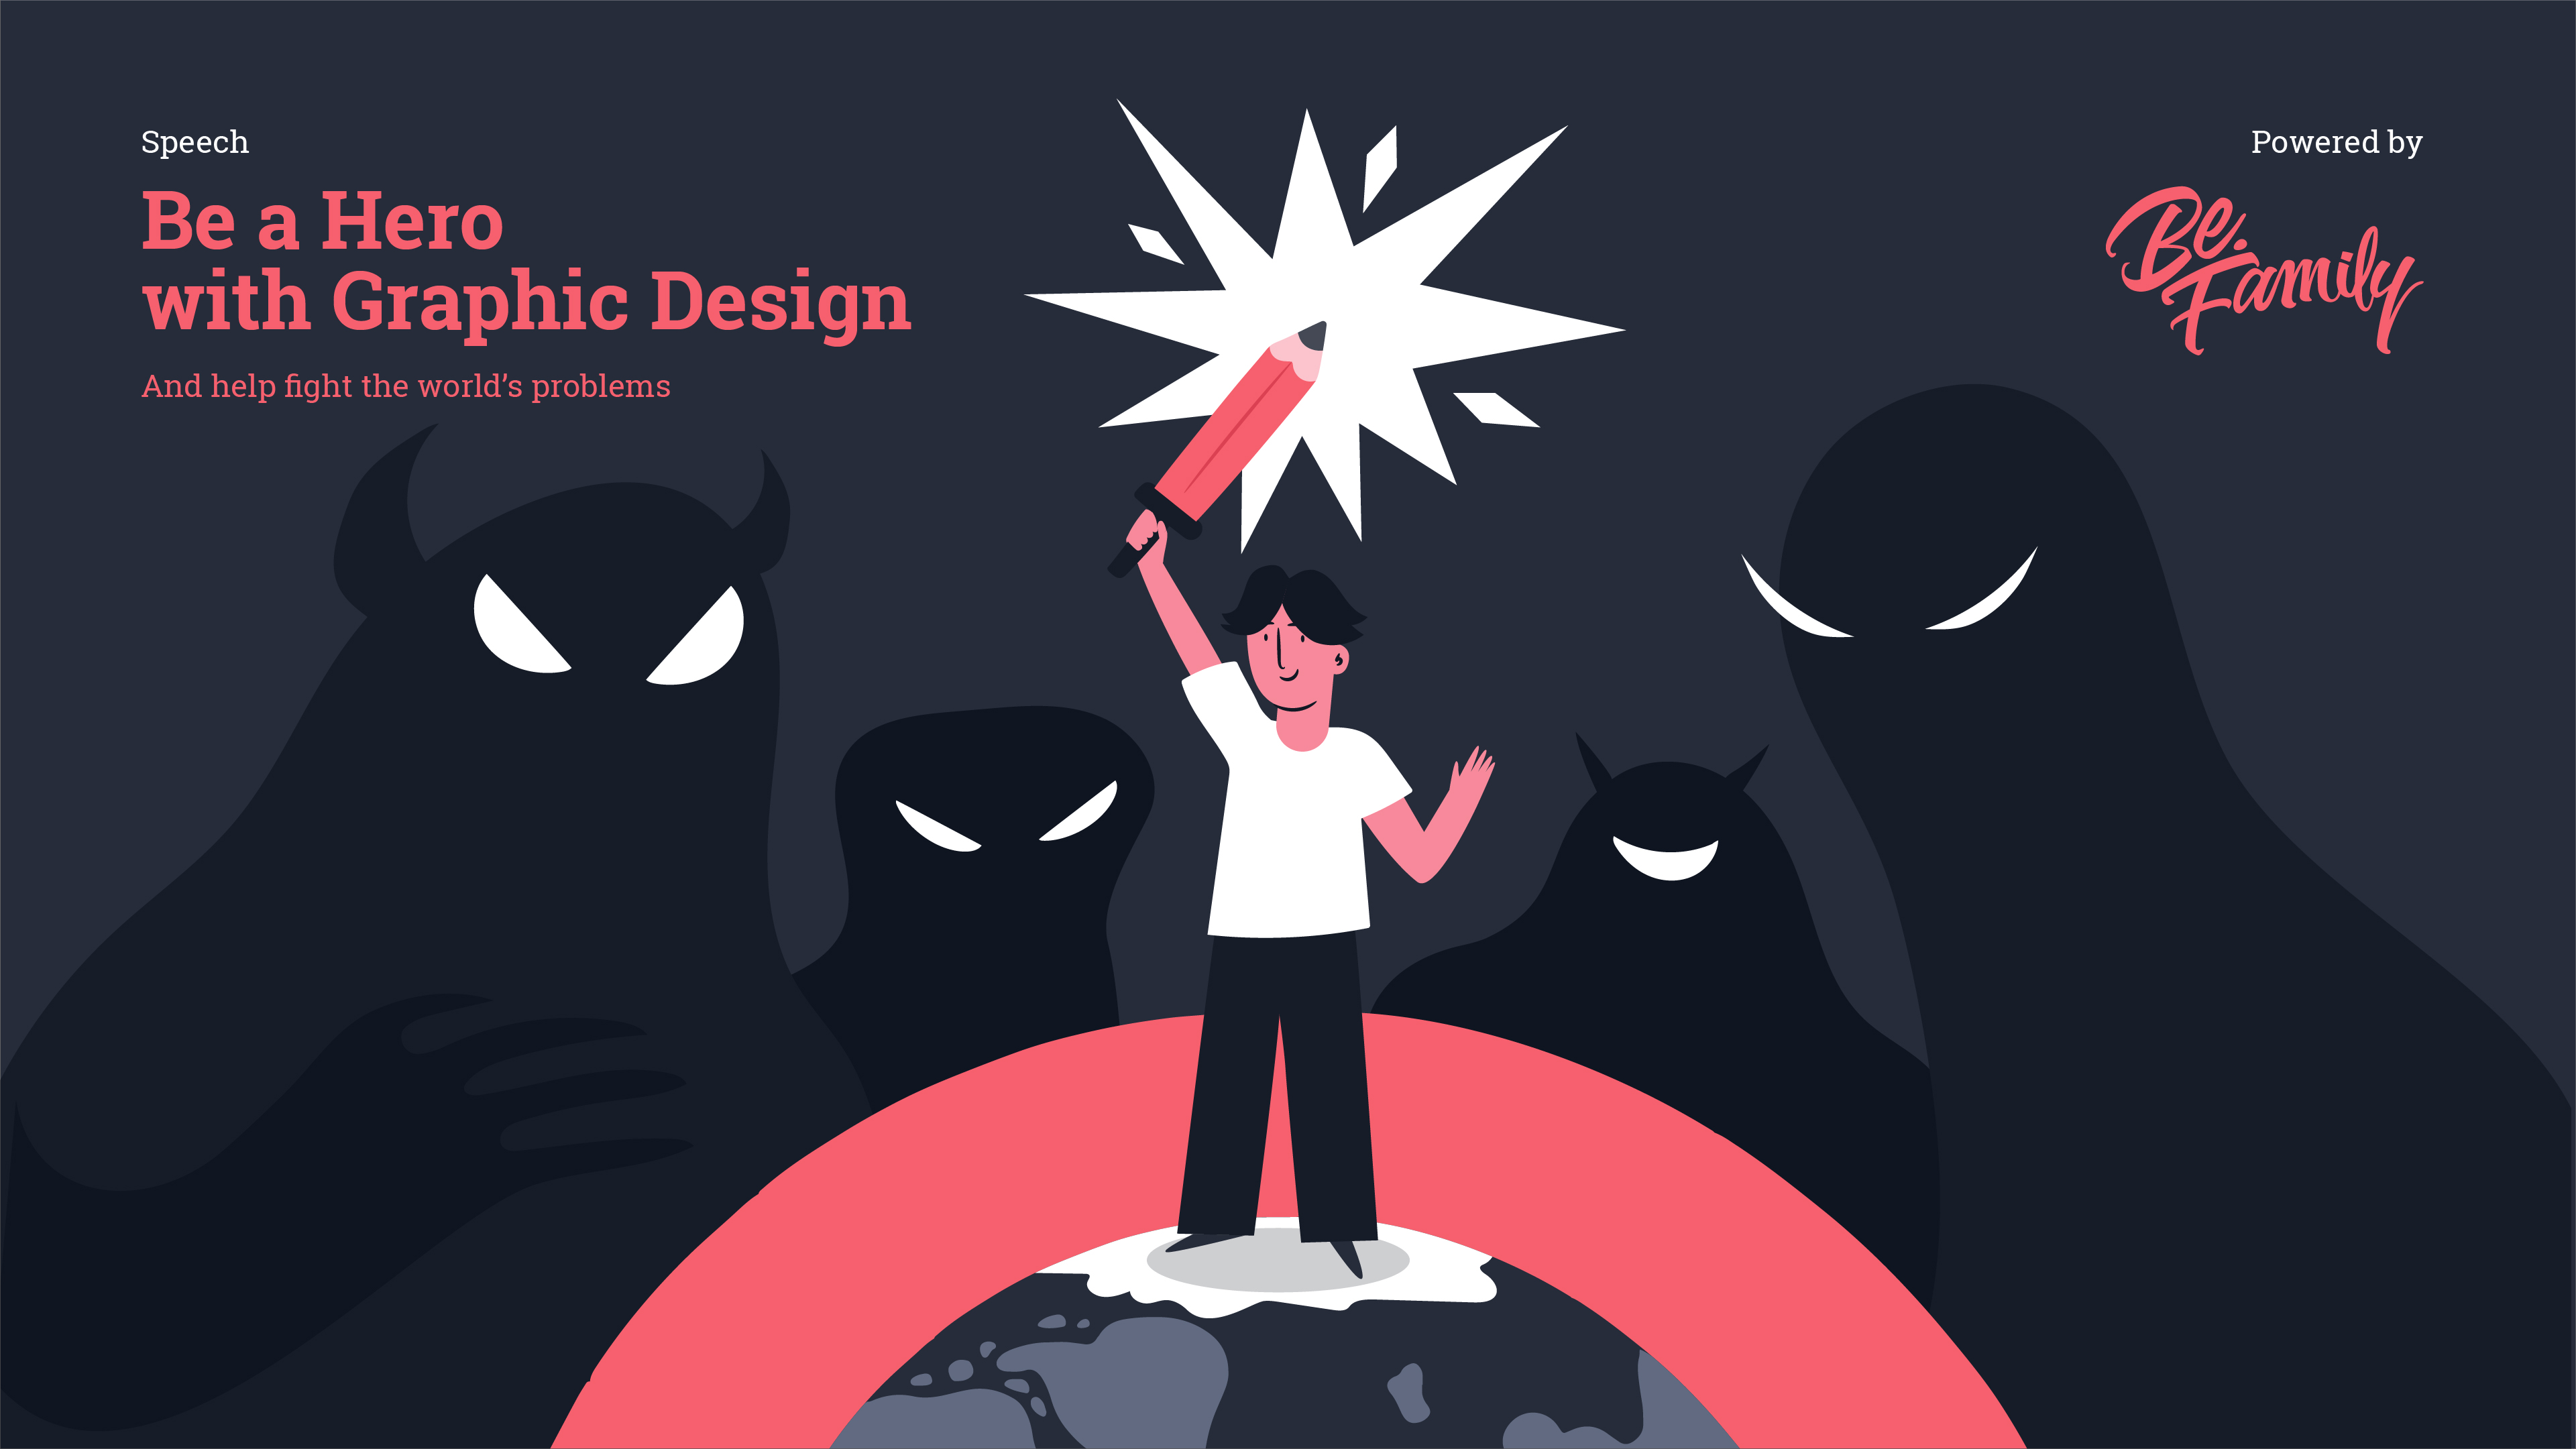 Be a Hero with Graphic Design